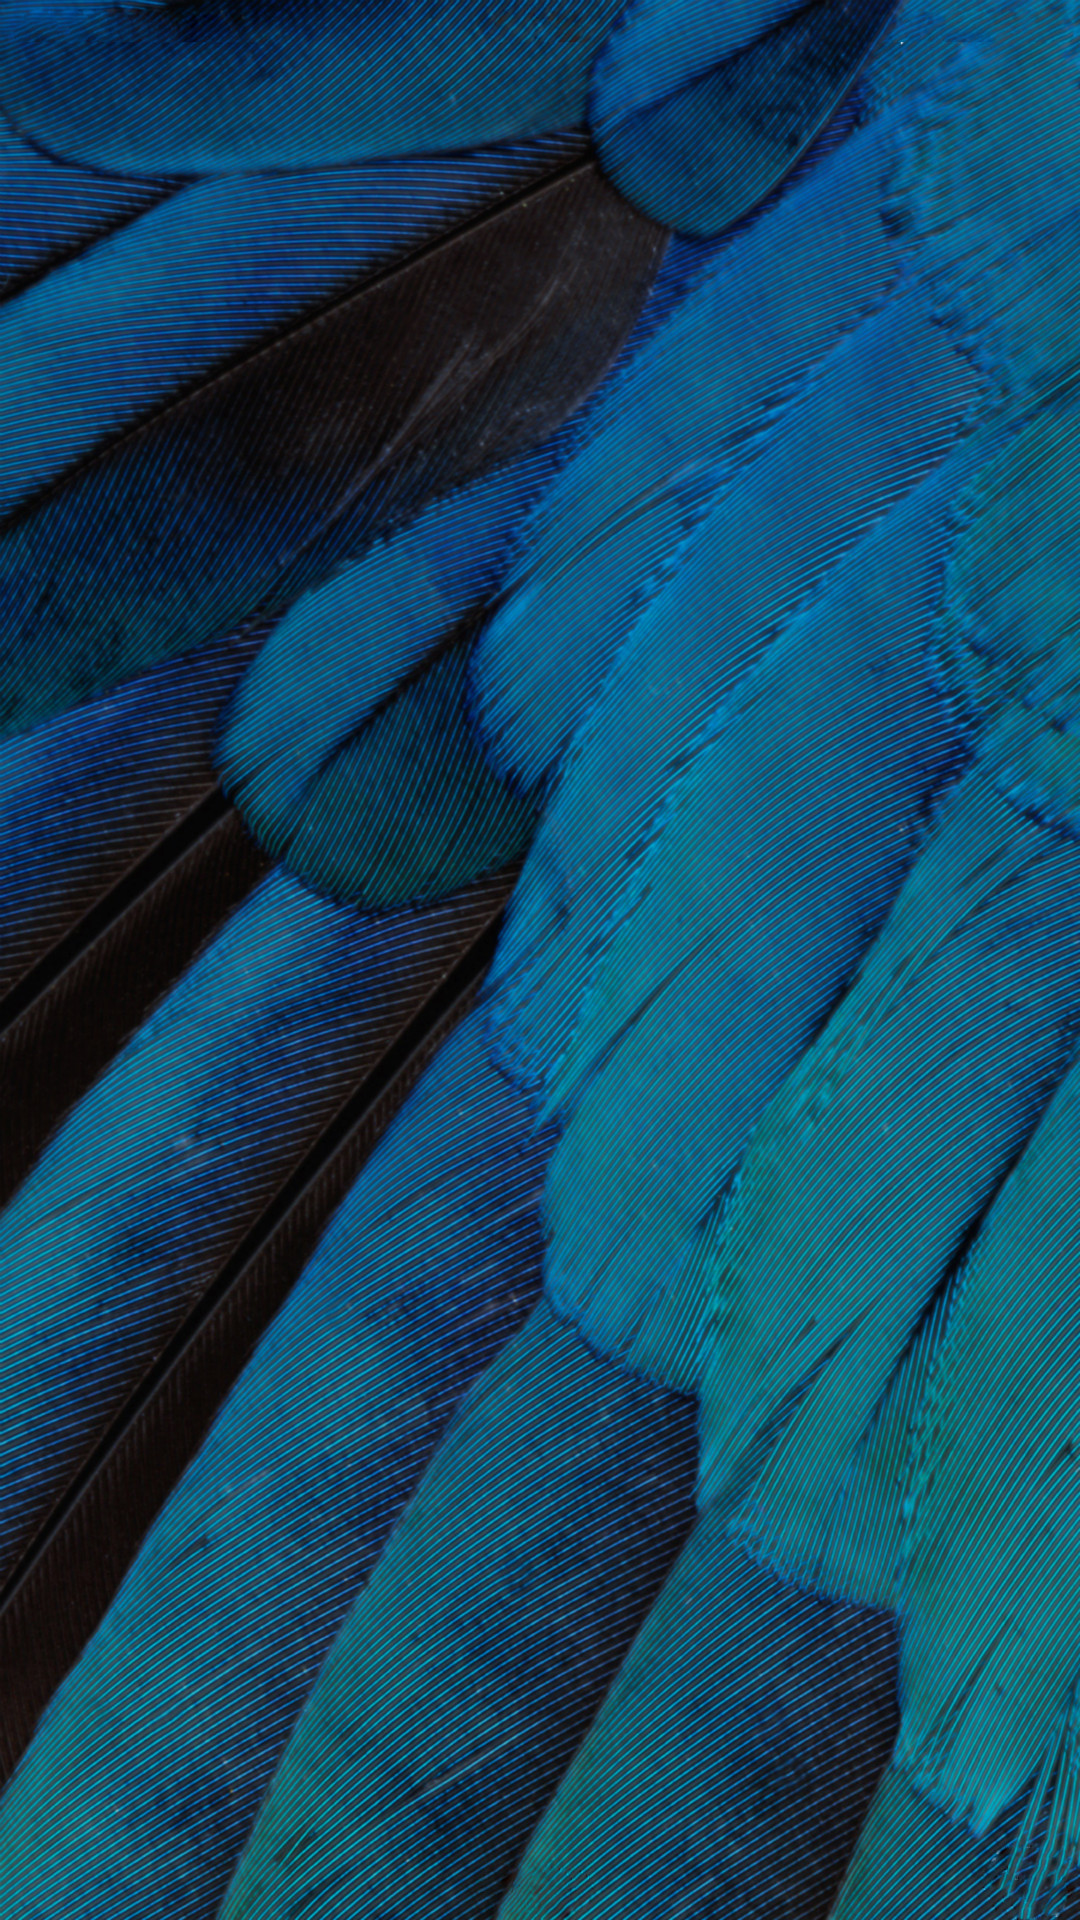 1080x1920 iOS9 Wallpaper Blue Feather Pattern Art iPhone 8 wallpaper